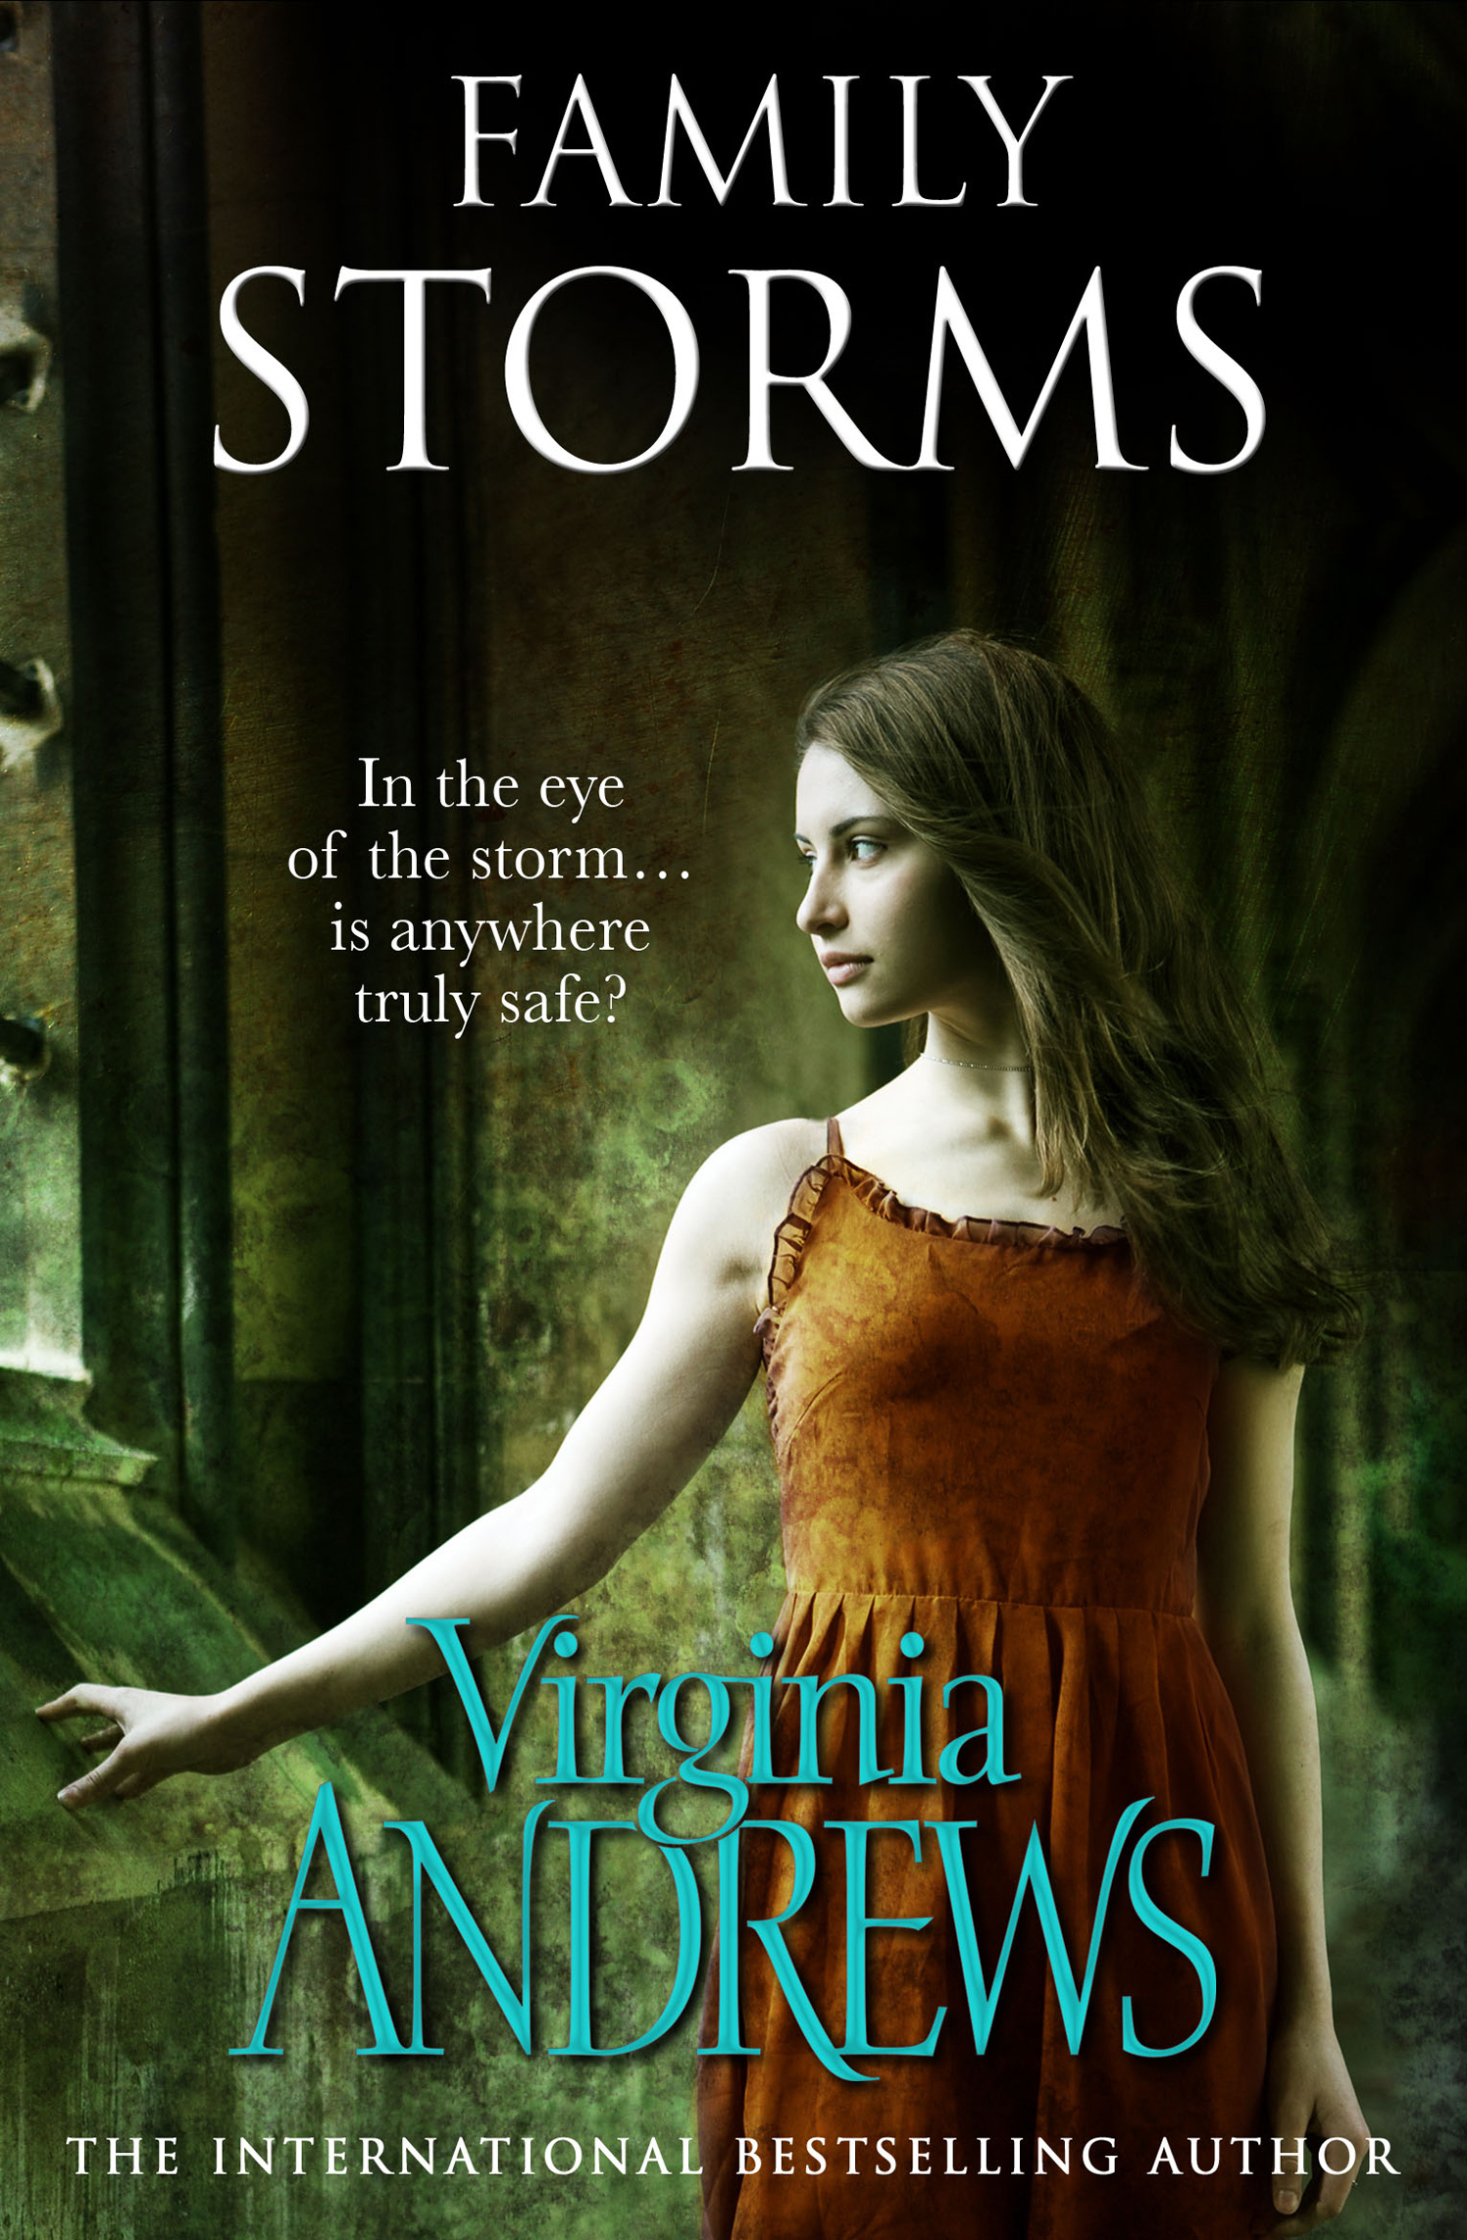 Family Storm / Virginia Andrews